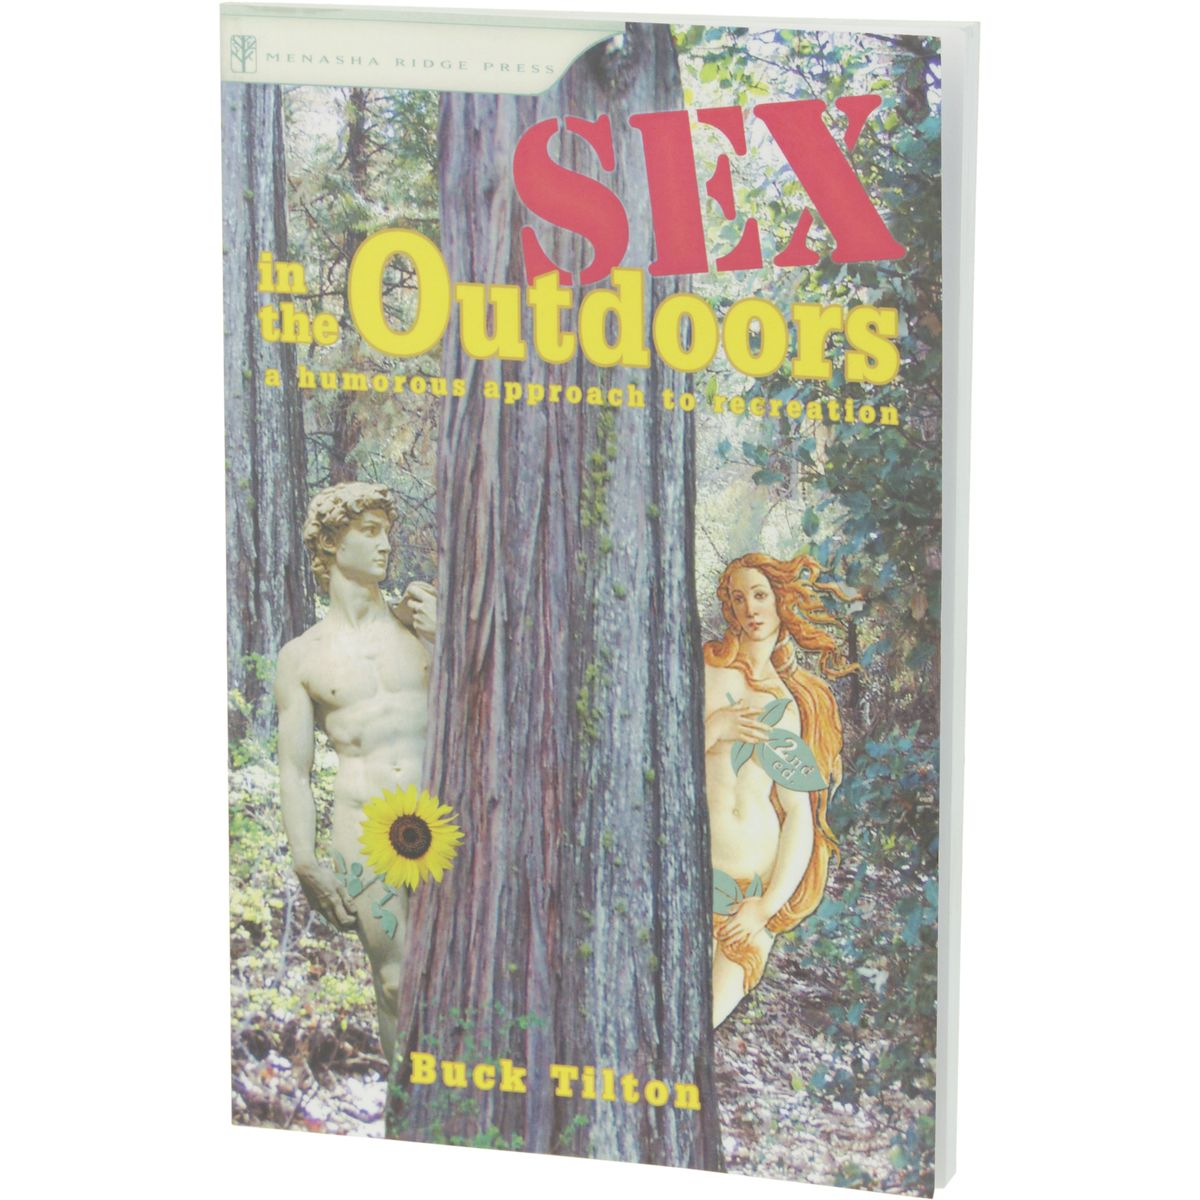 Menasha Ridge Press Sex in the Outdoors